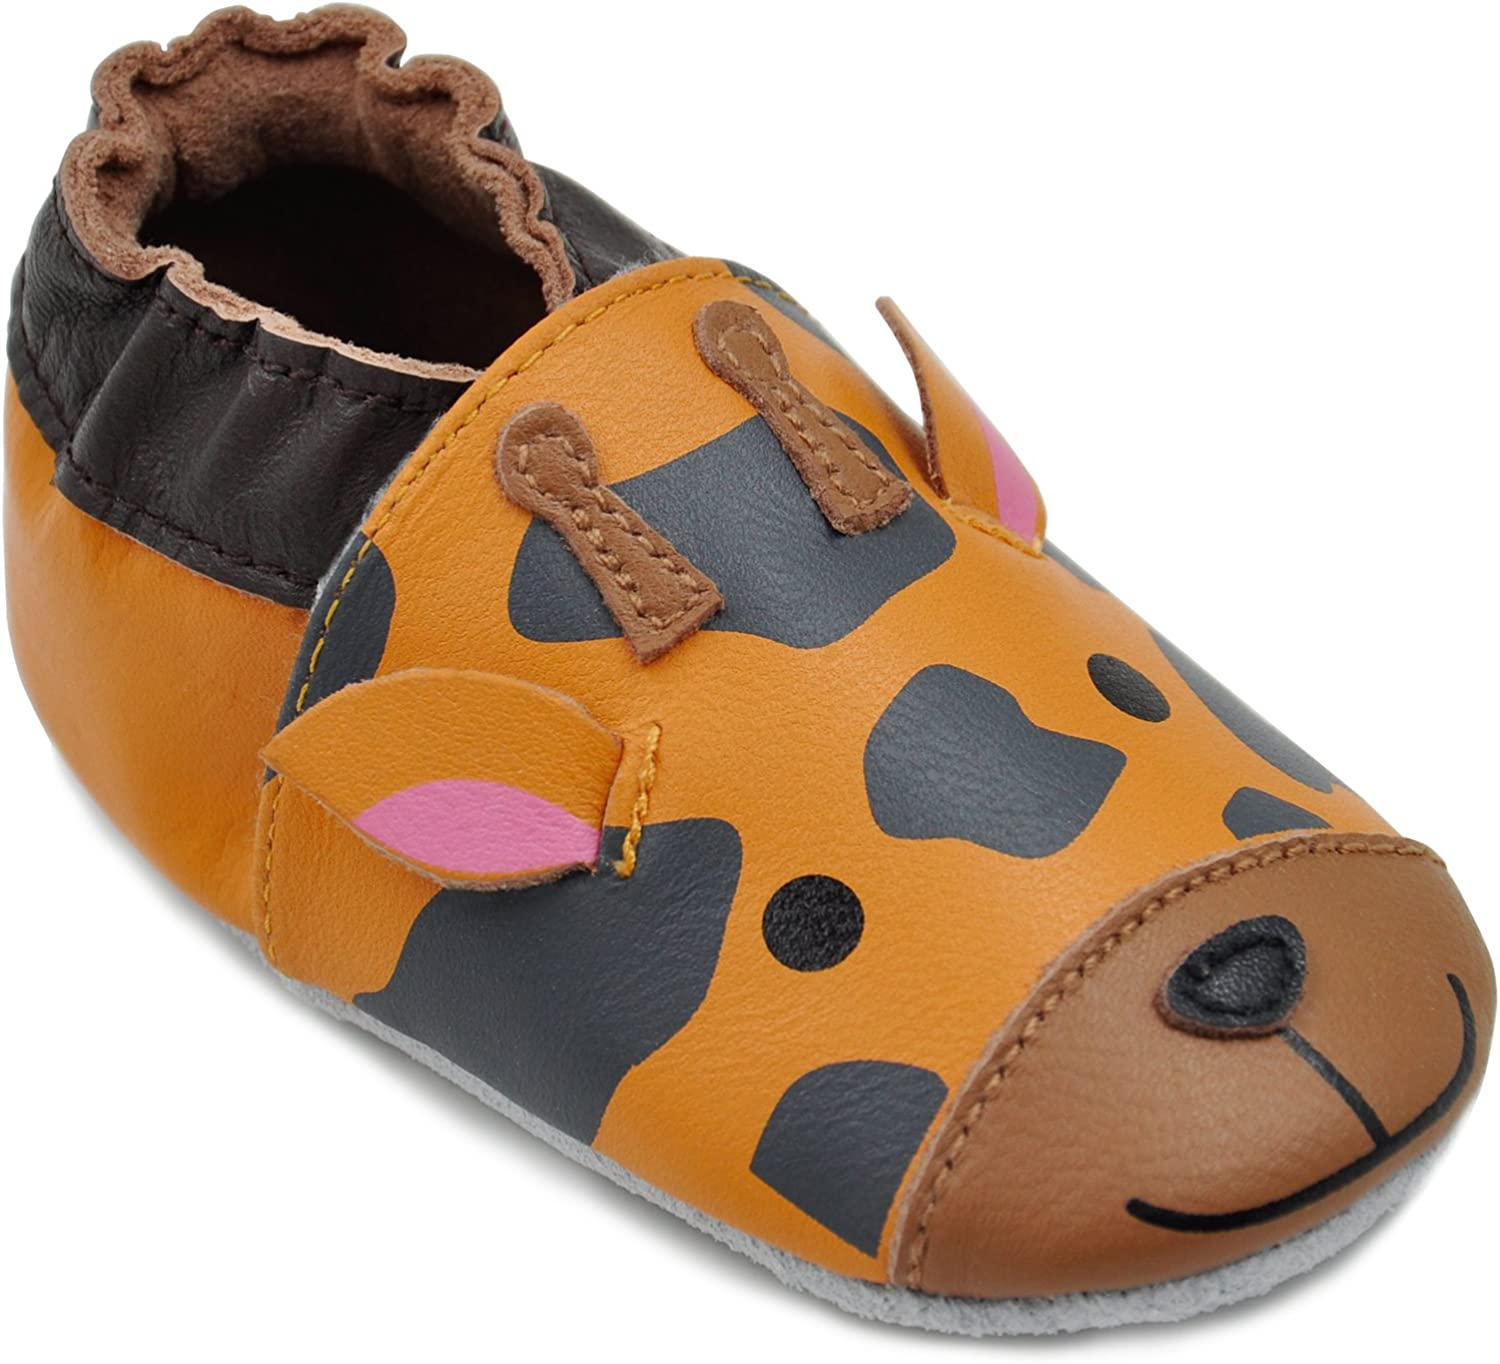 Kimi Kai Baby Unisex Lambskin Leather Soft Sole Shoes Giraffe